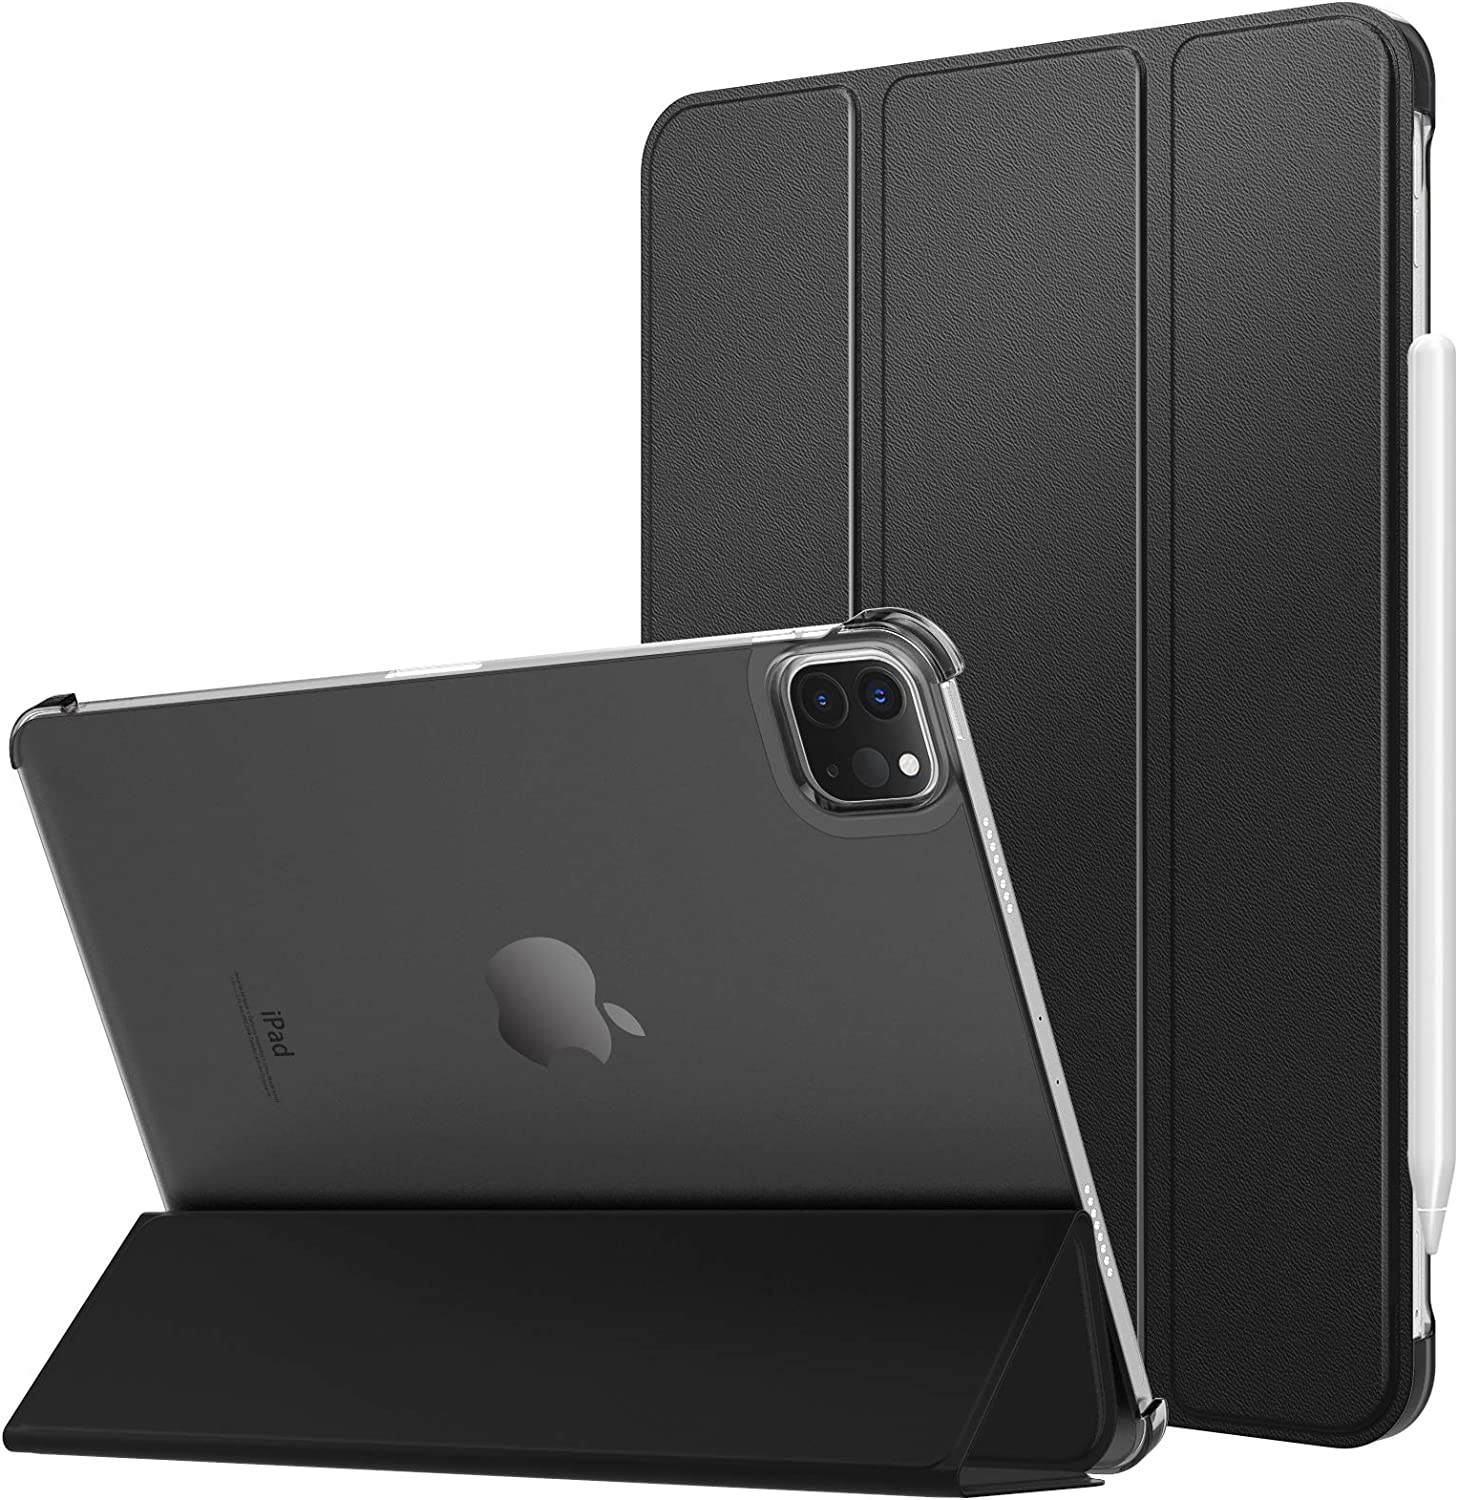 MoKo Case Fit iPad Pro 12.9 Inch Case 2021(5th Gen), [Support Apple Pencil Charging] Ultra Slim Translucent Hard Back Shell Protective Smart Cover Fit iPad Pro 12.9